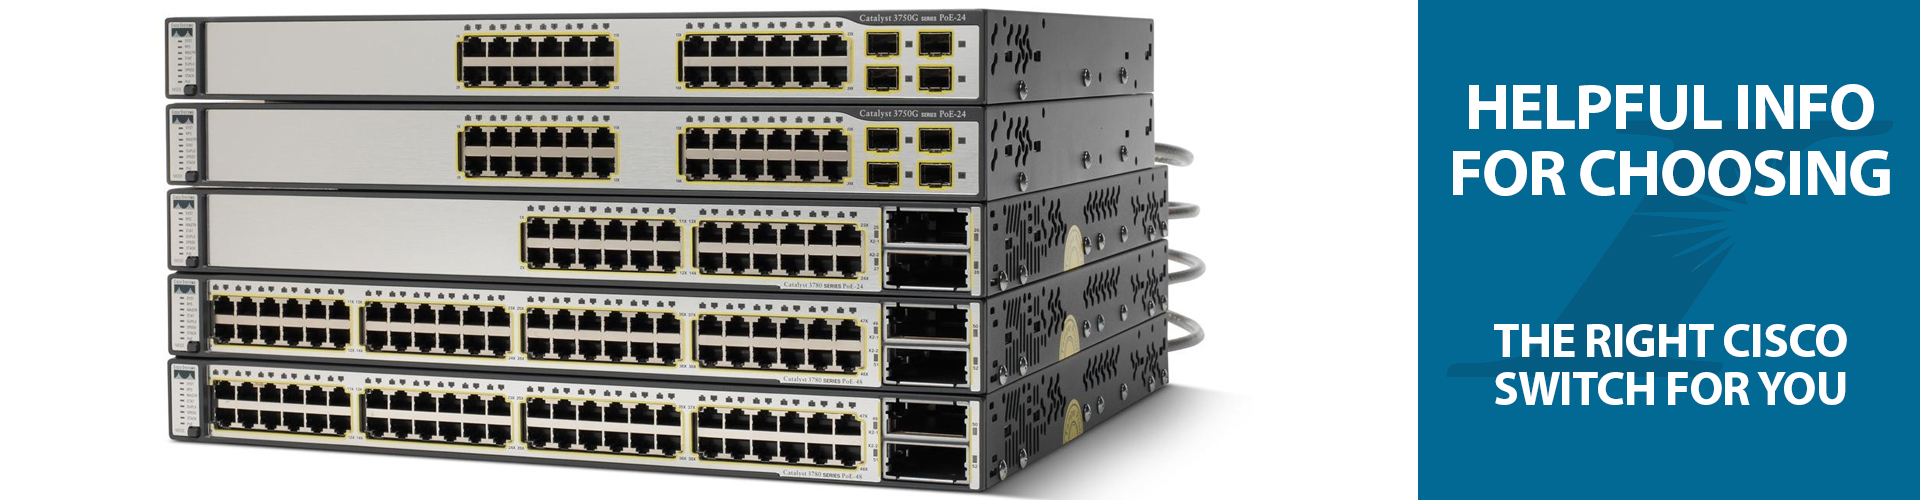 Helpful Information For Choosing The Right Cisco Switch Integrity 2960 S Diagram And Catalyst Switches Comparison